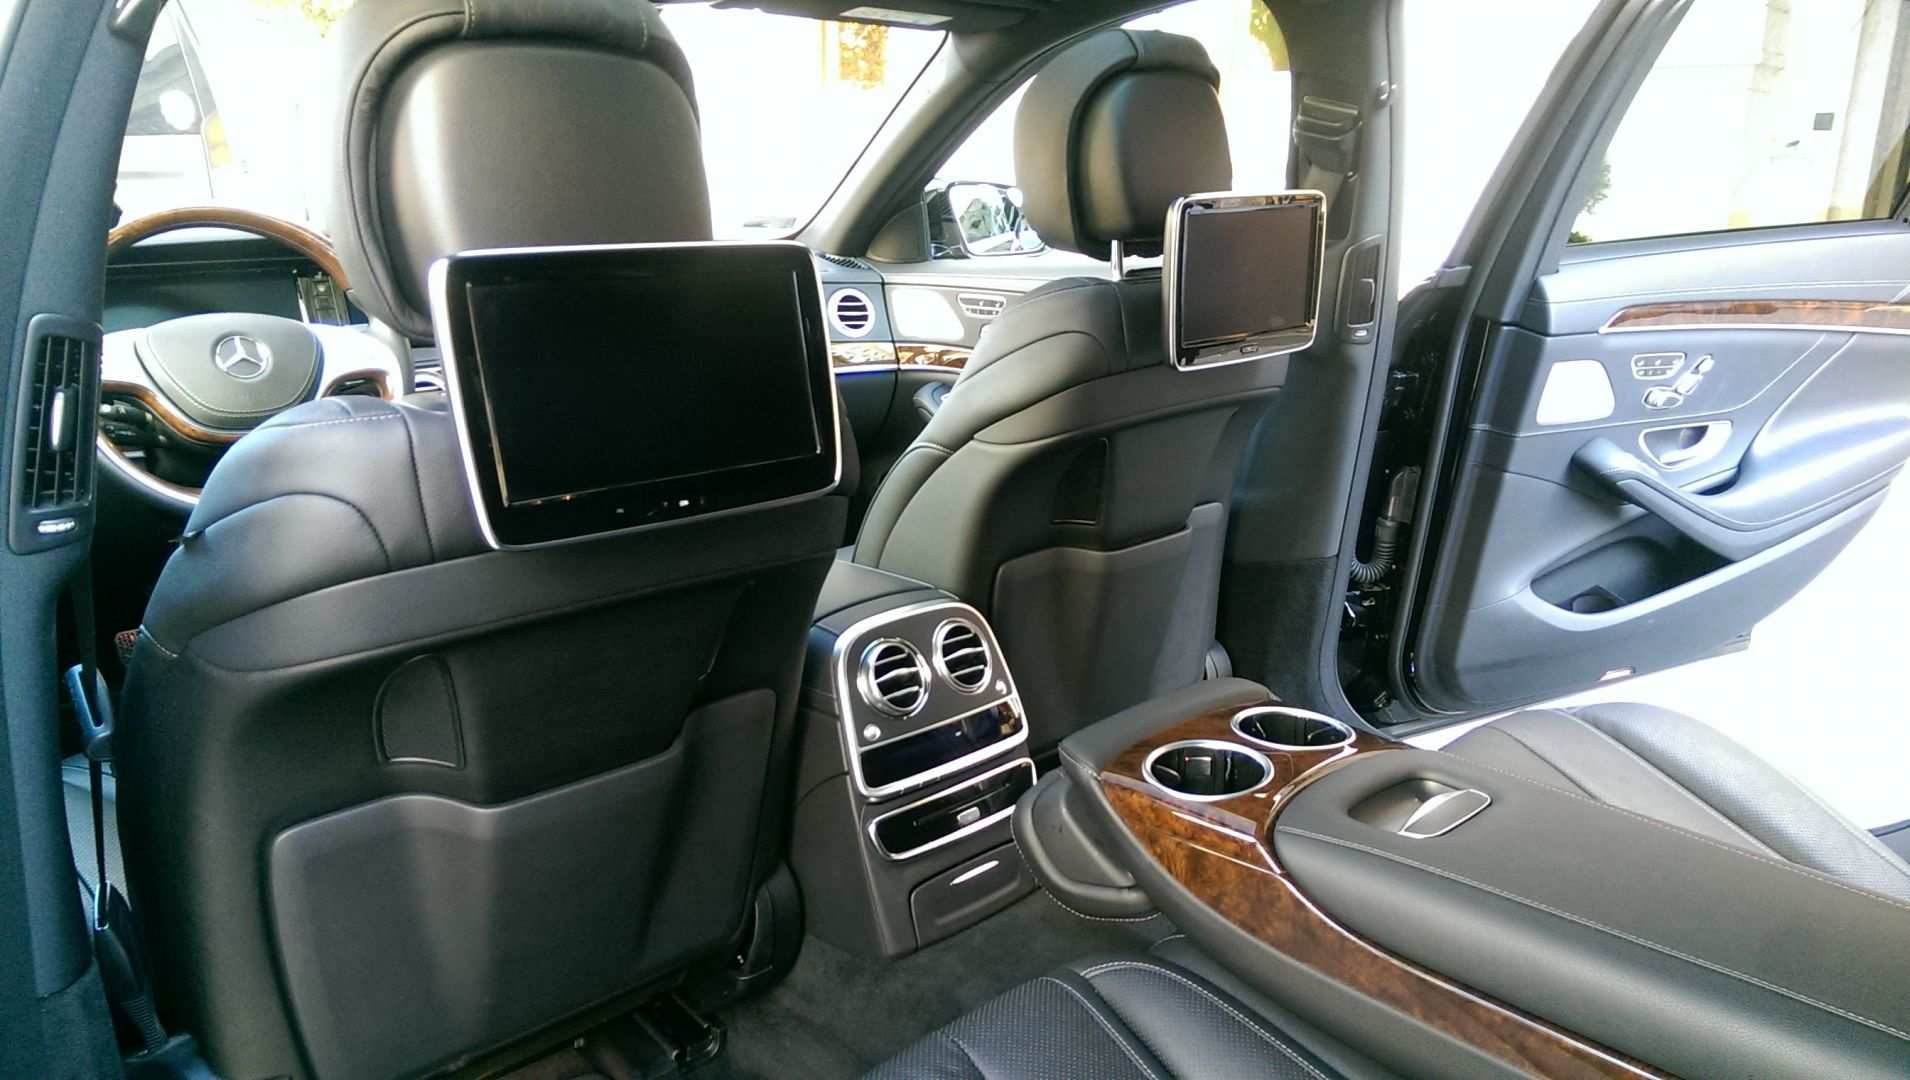 Luxury Service - Mercedes Benz S-CLASS W222